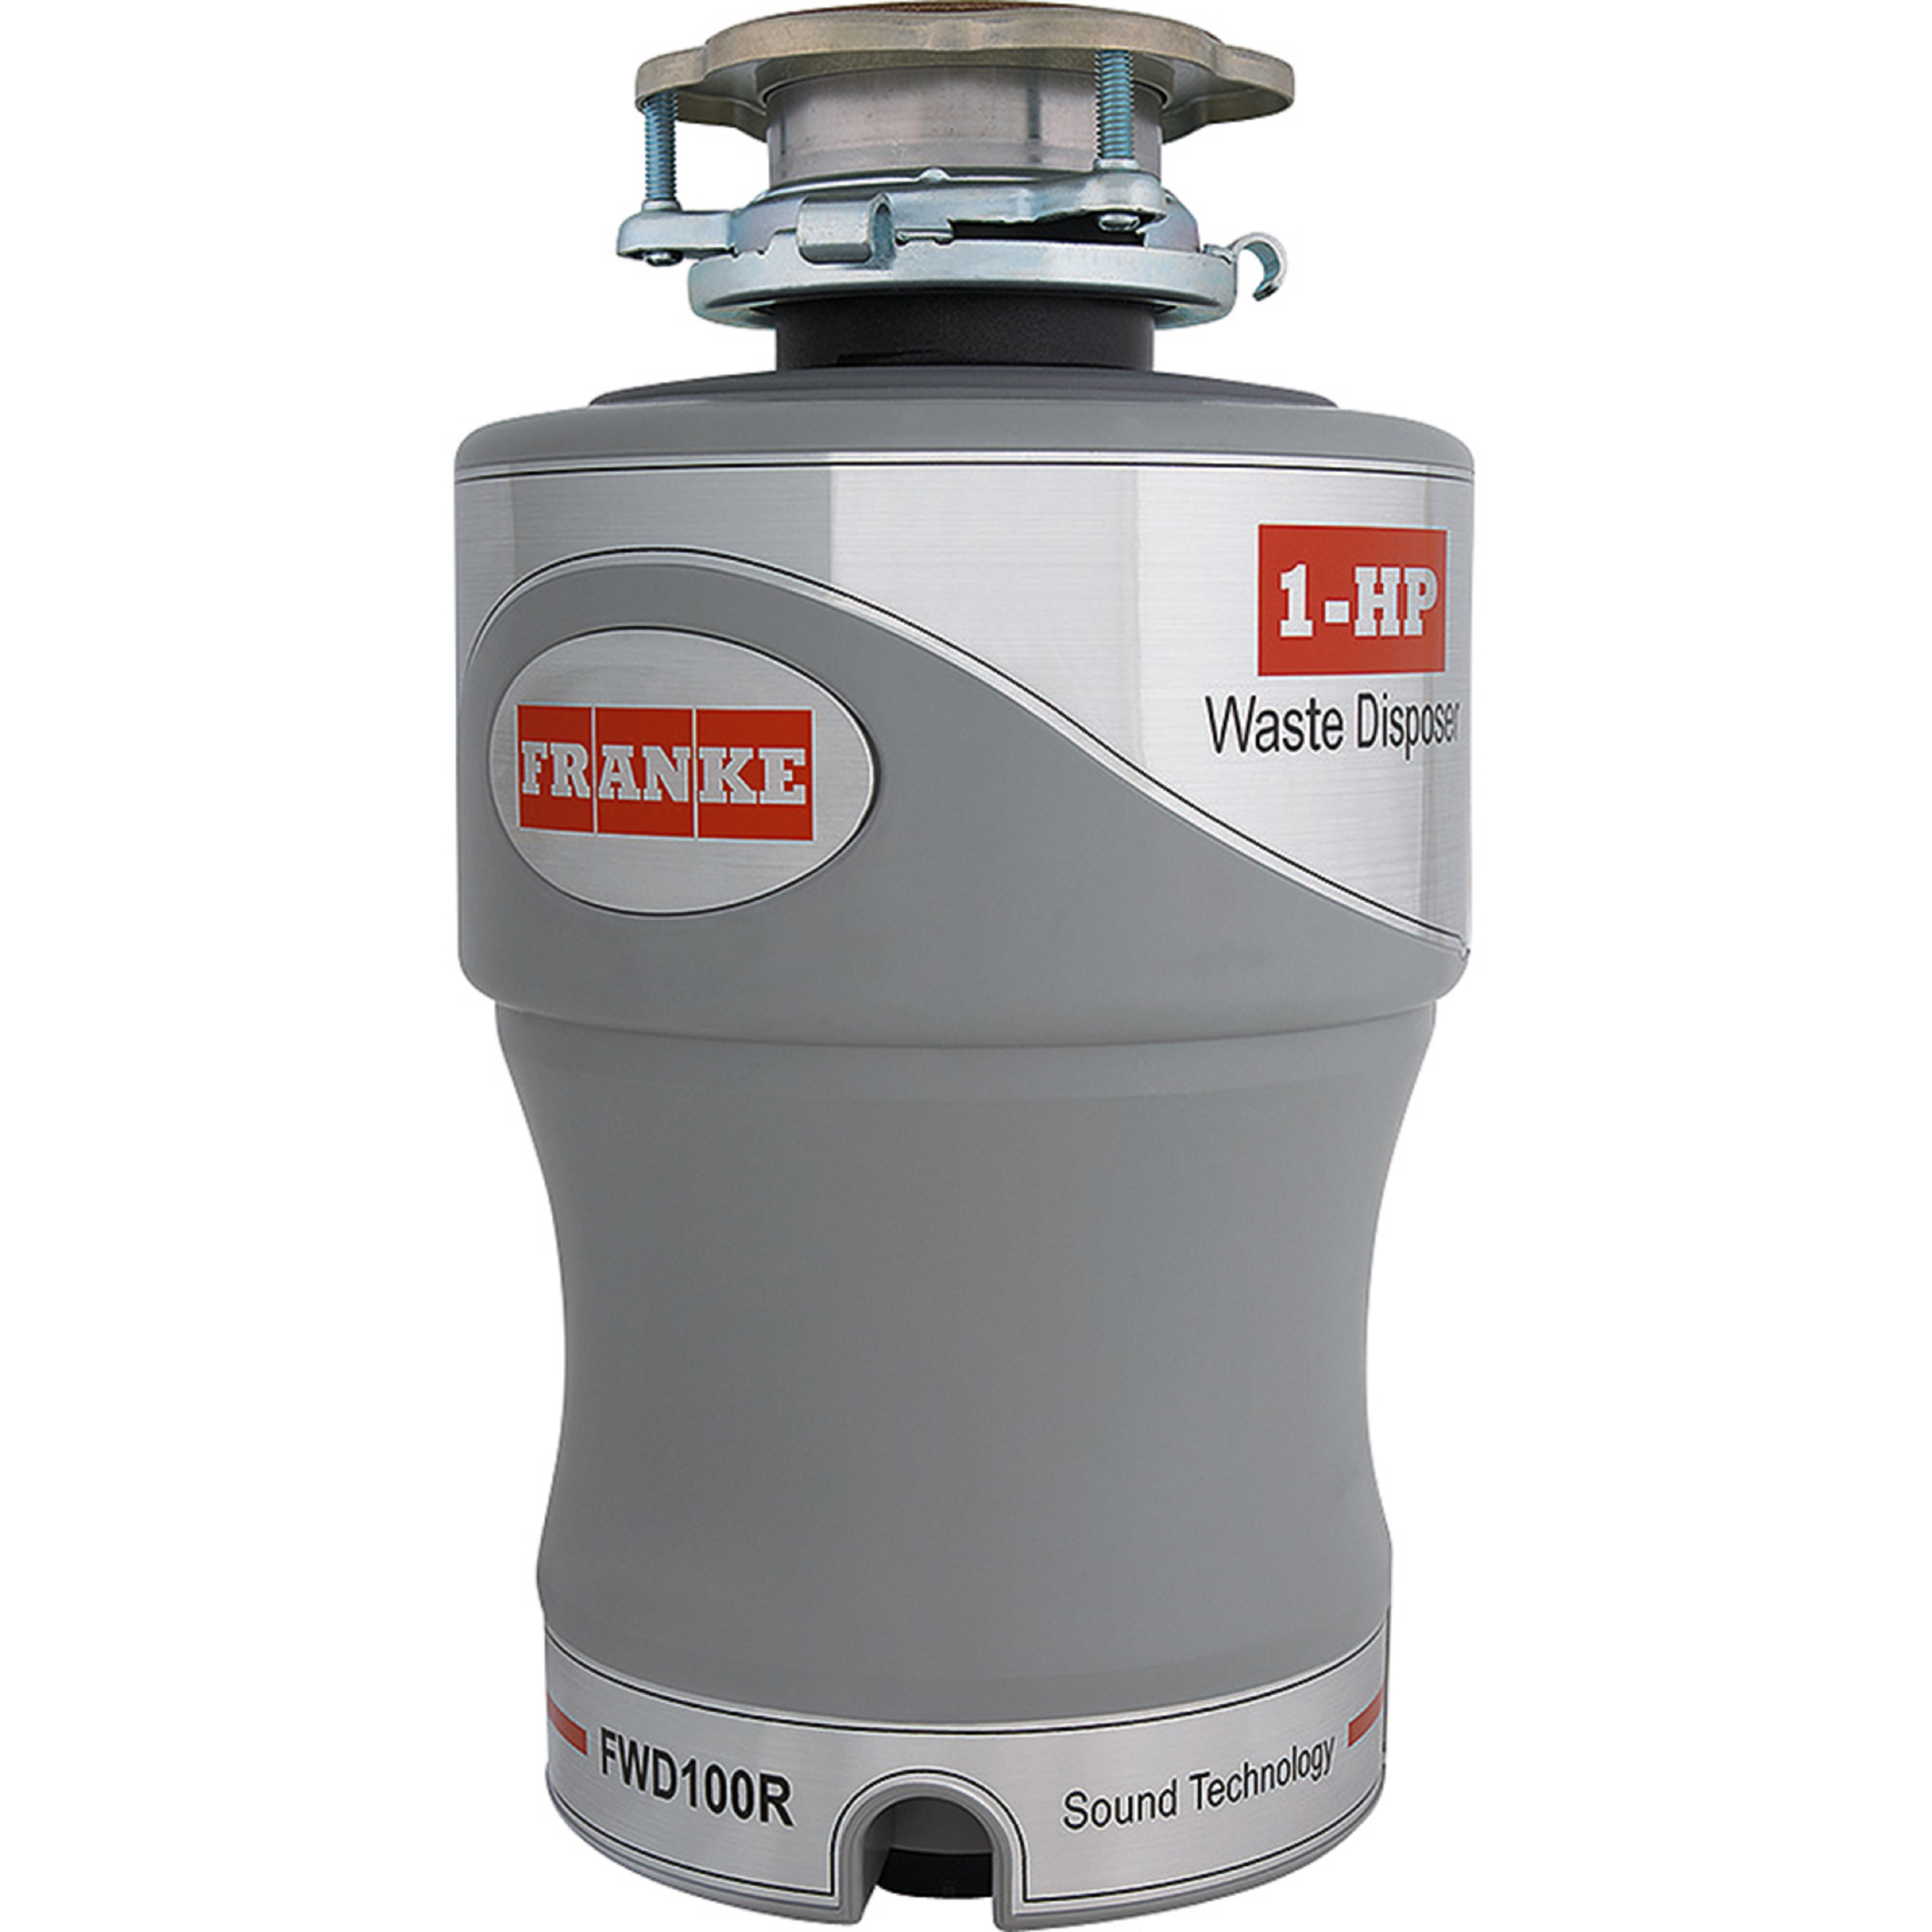 Franke 1 HP Waste Disposer (model no. FWD100R)